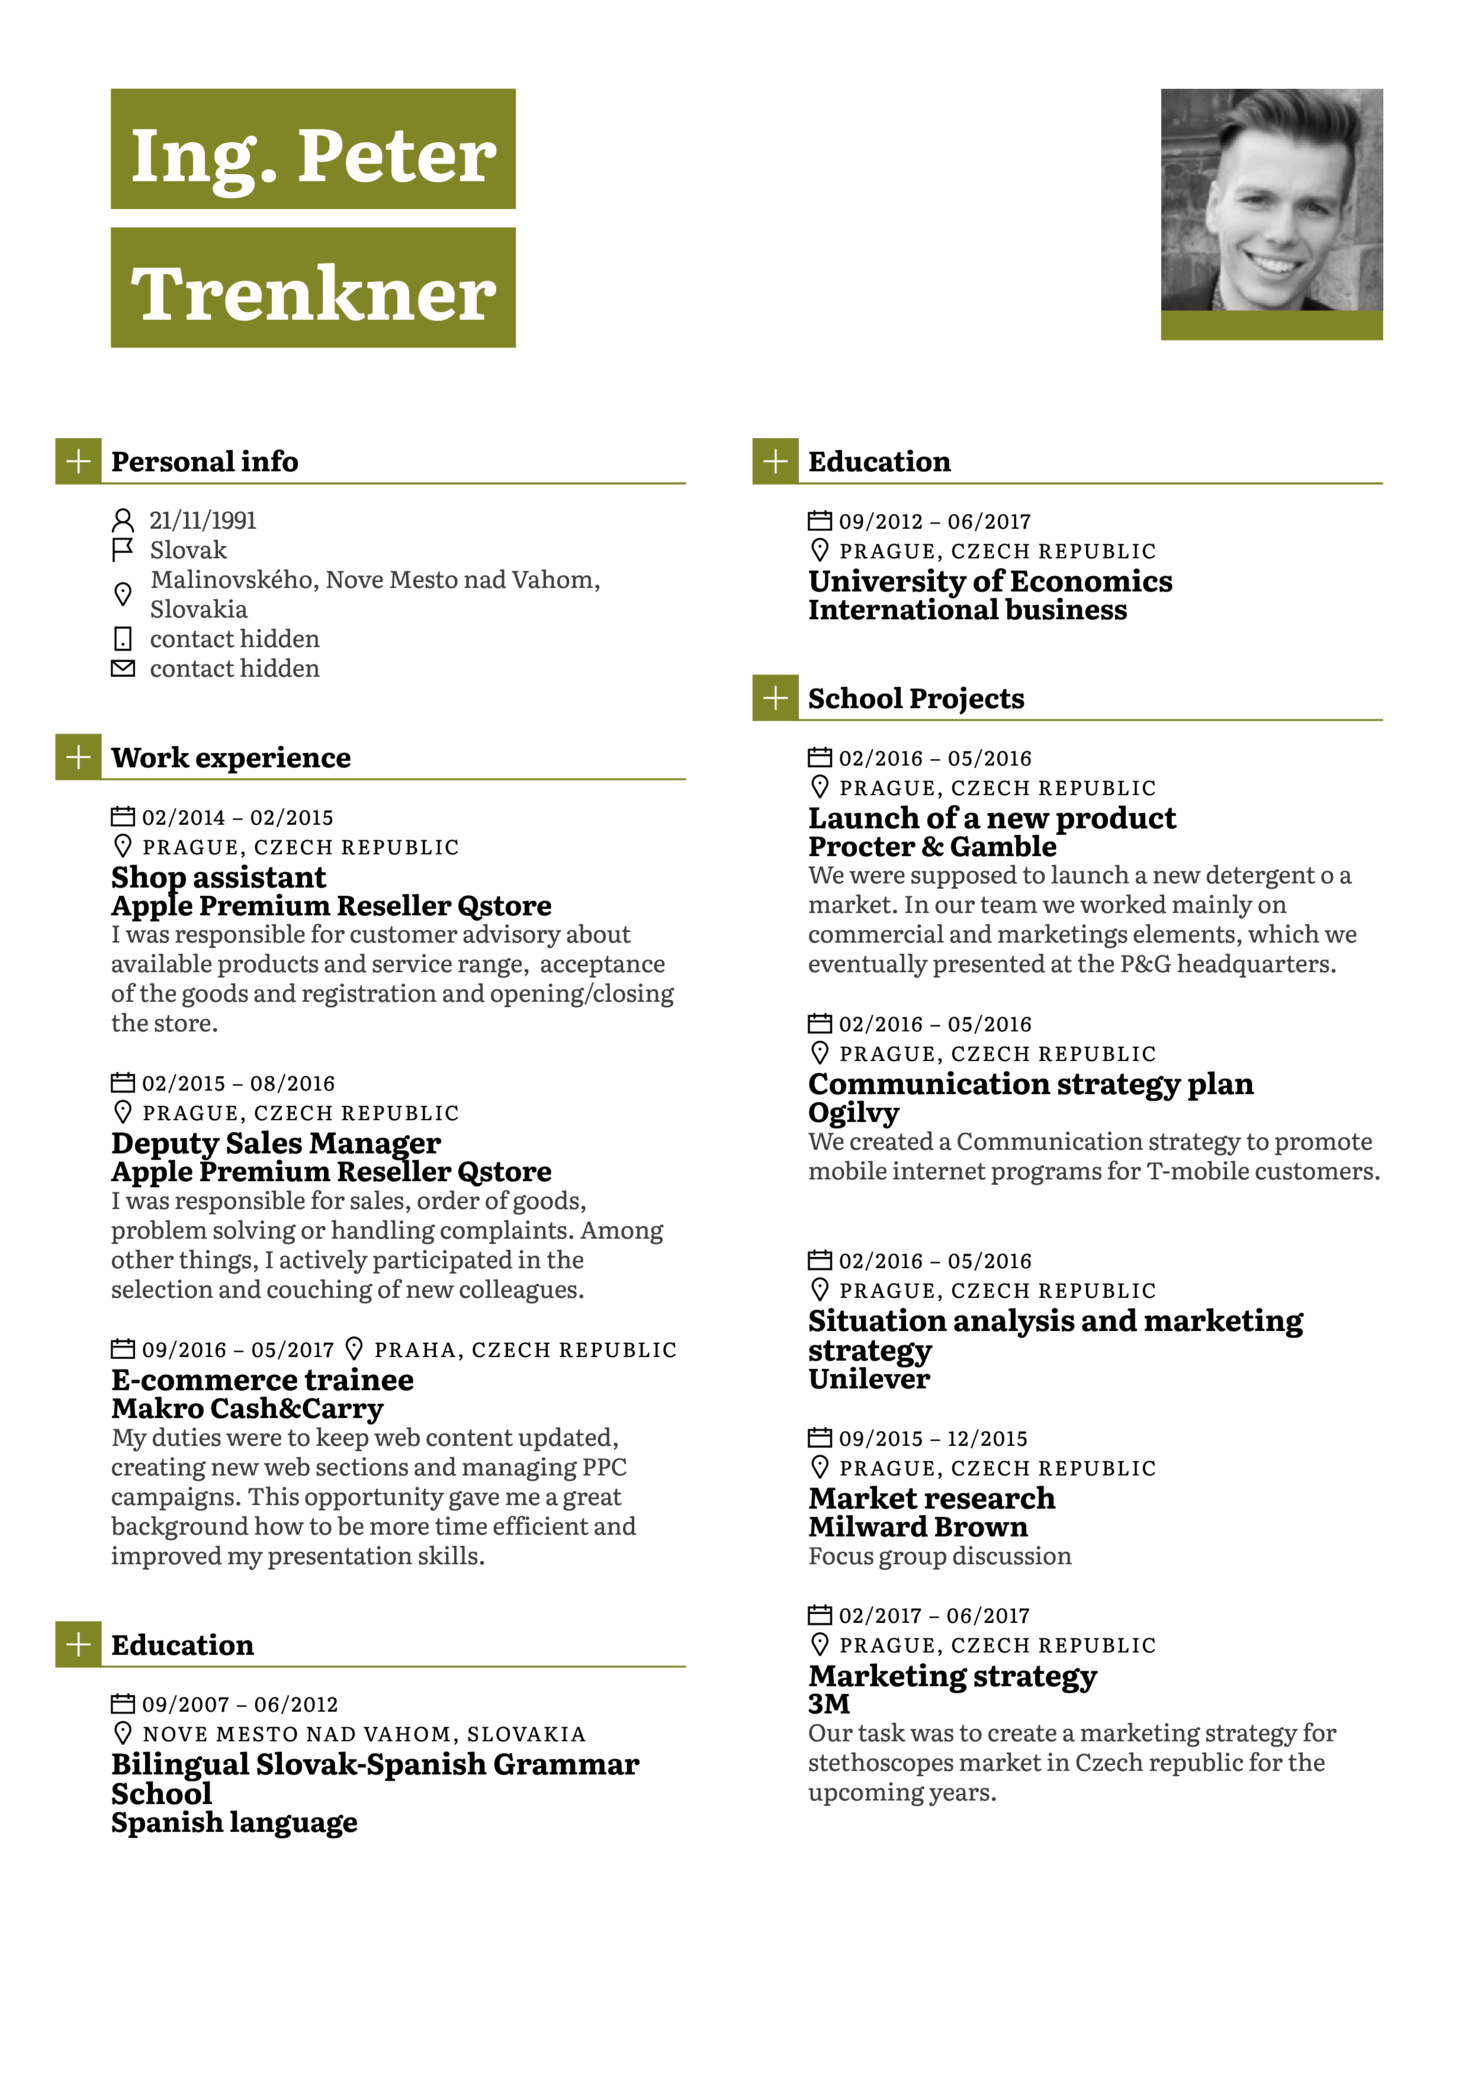 Dell Junior Product Line Manager Resume Template (parte 1)